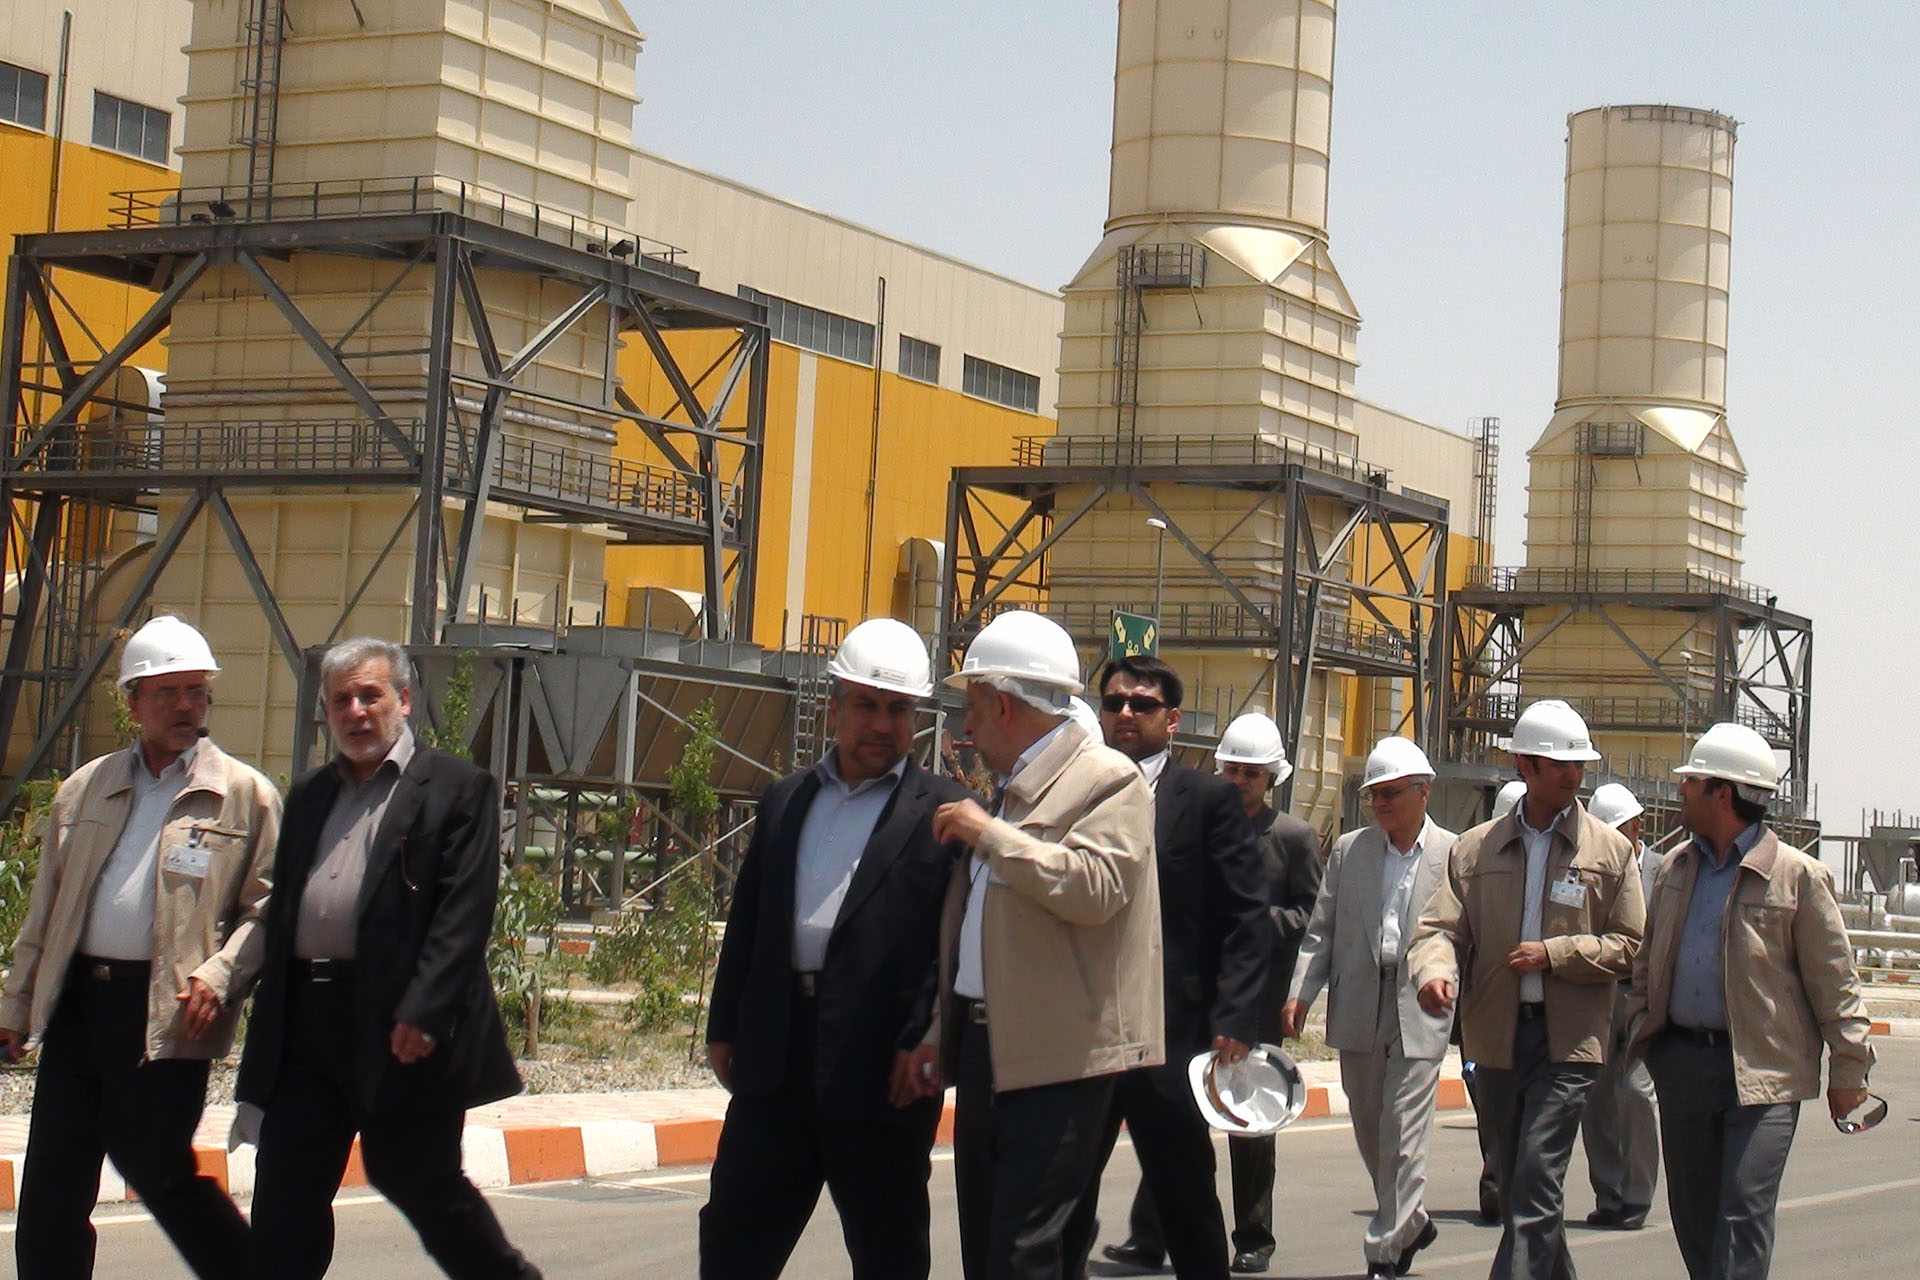 Minister of Energy Visited Rudshur Power Plant